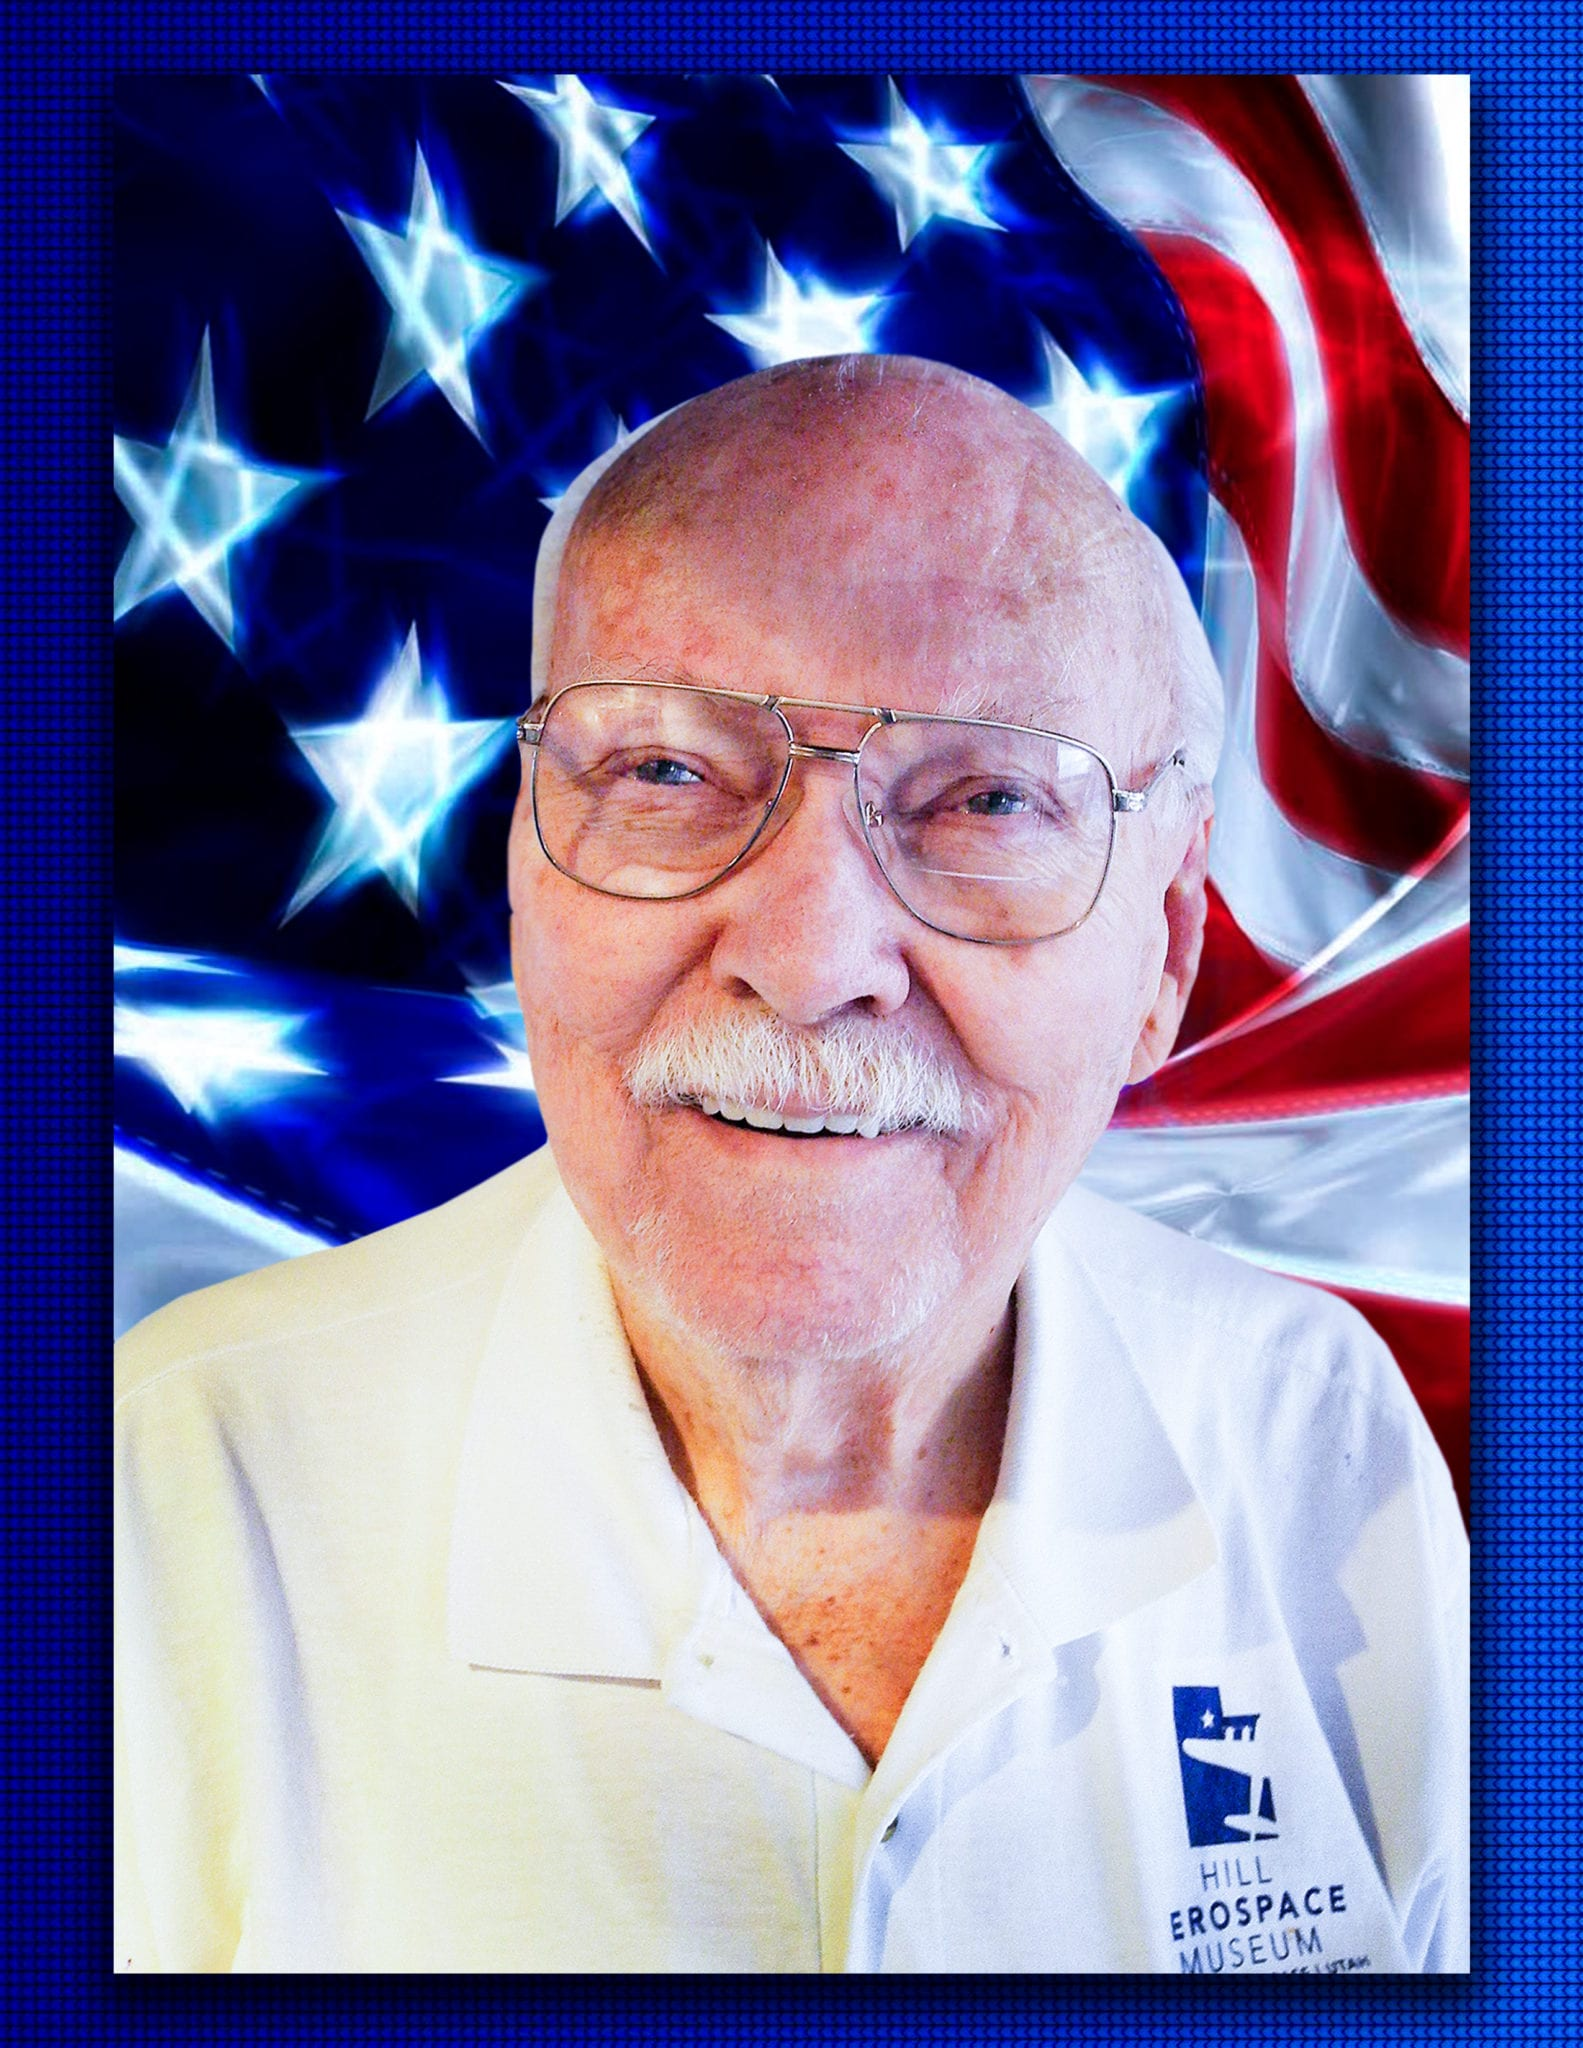 Hill Aerospace Foundation Volunteer, John Adrian with US Flag